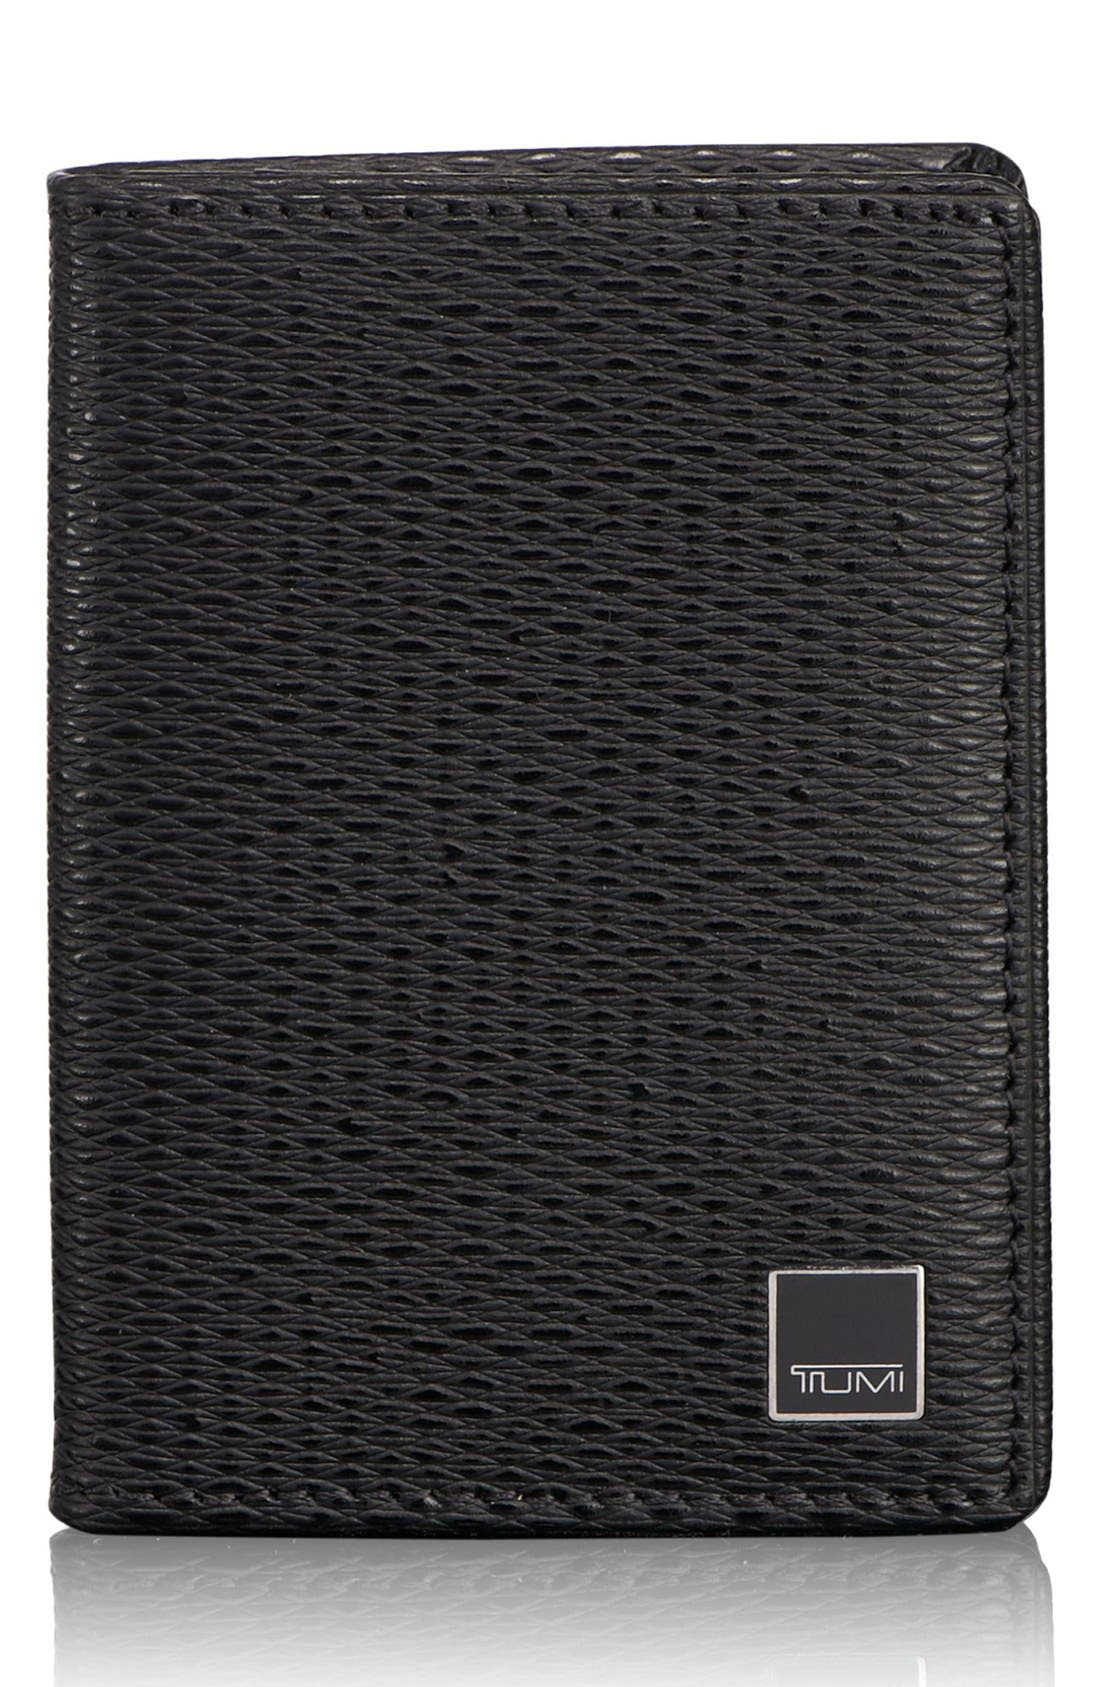 Main Image - Tumi 'Monaco' Gusseted Leather Card Case